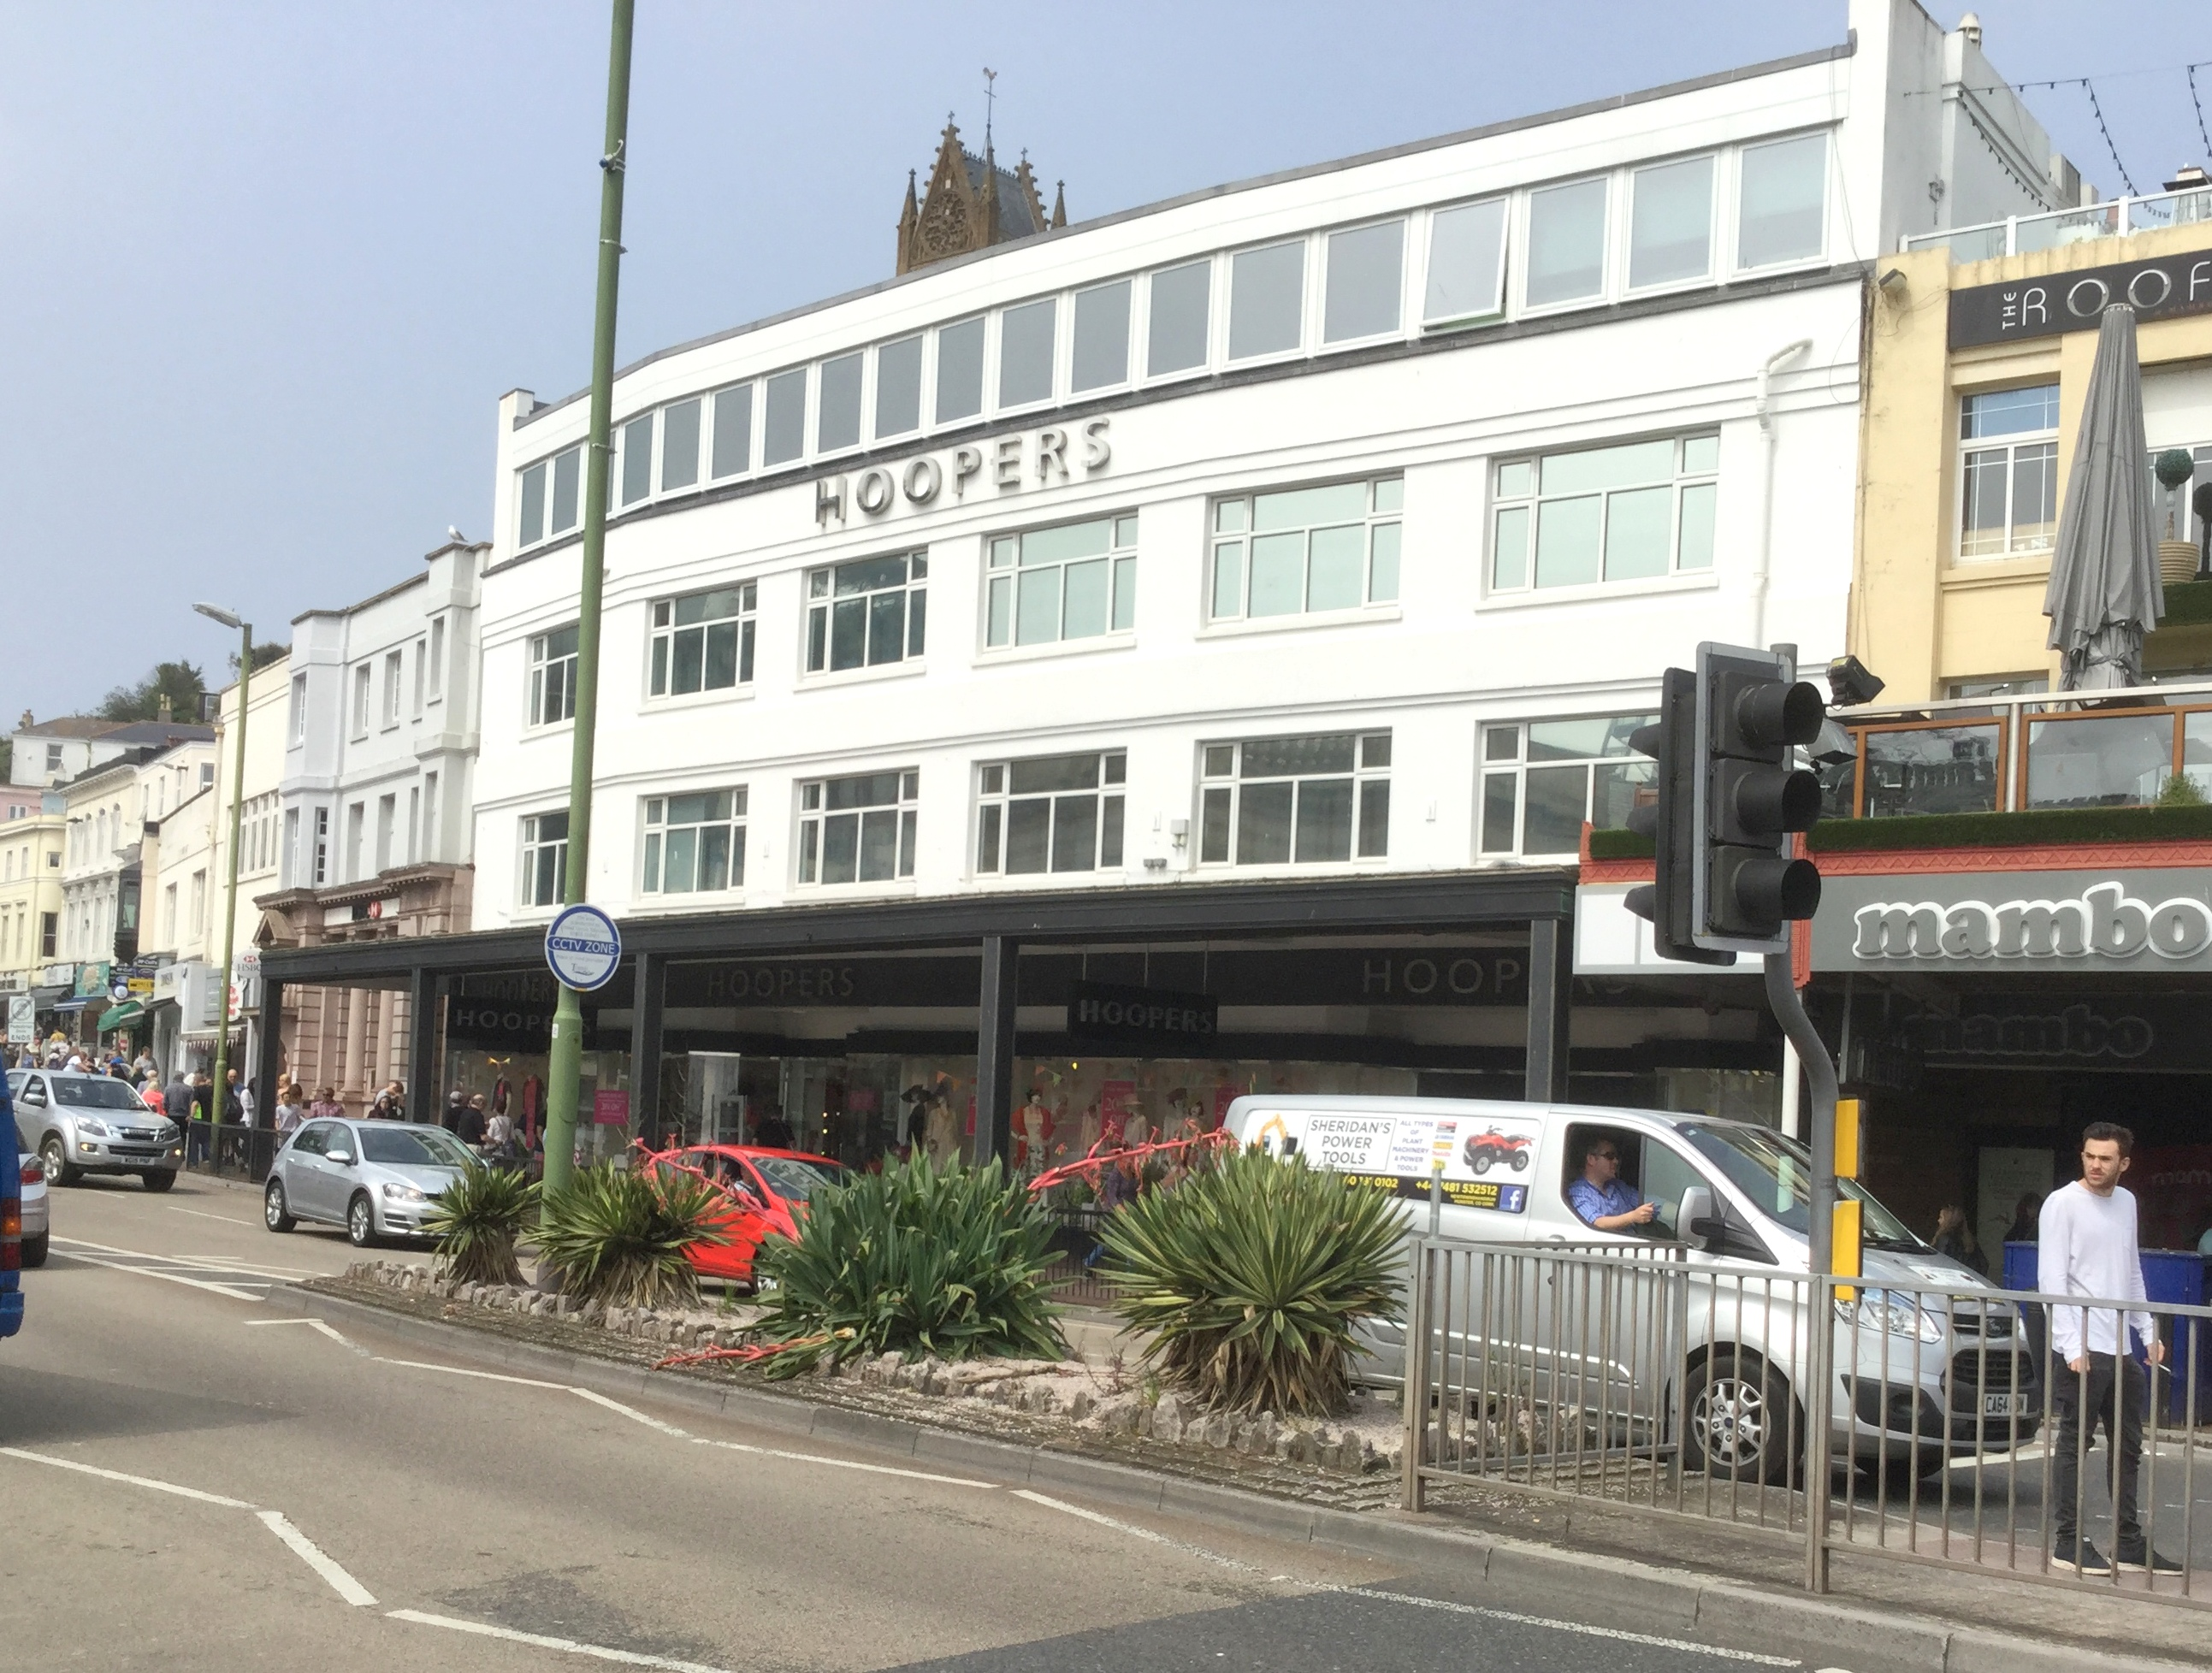 Hoopers Department Store on the harbourside of the south Devon town of Torquay